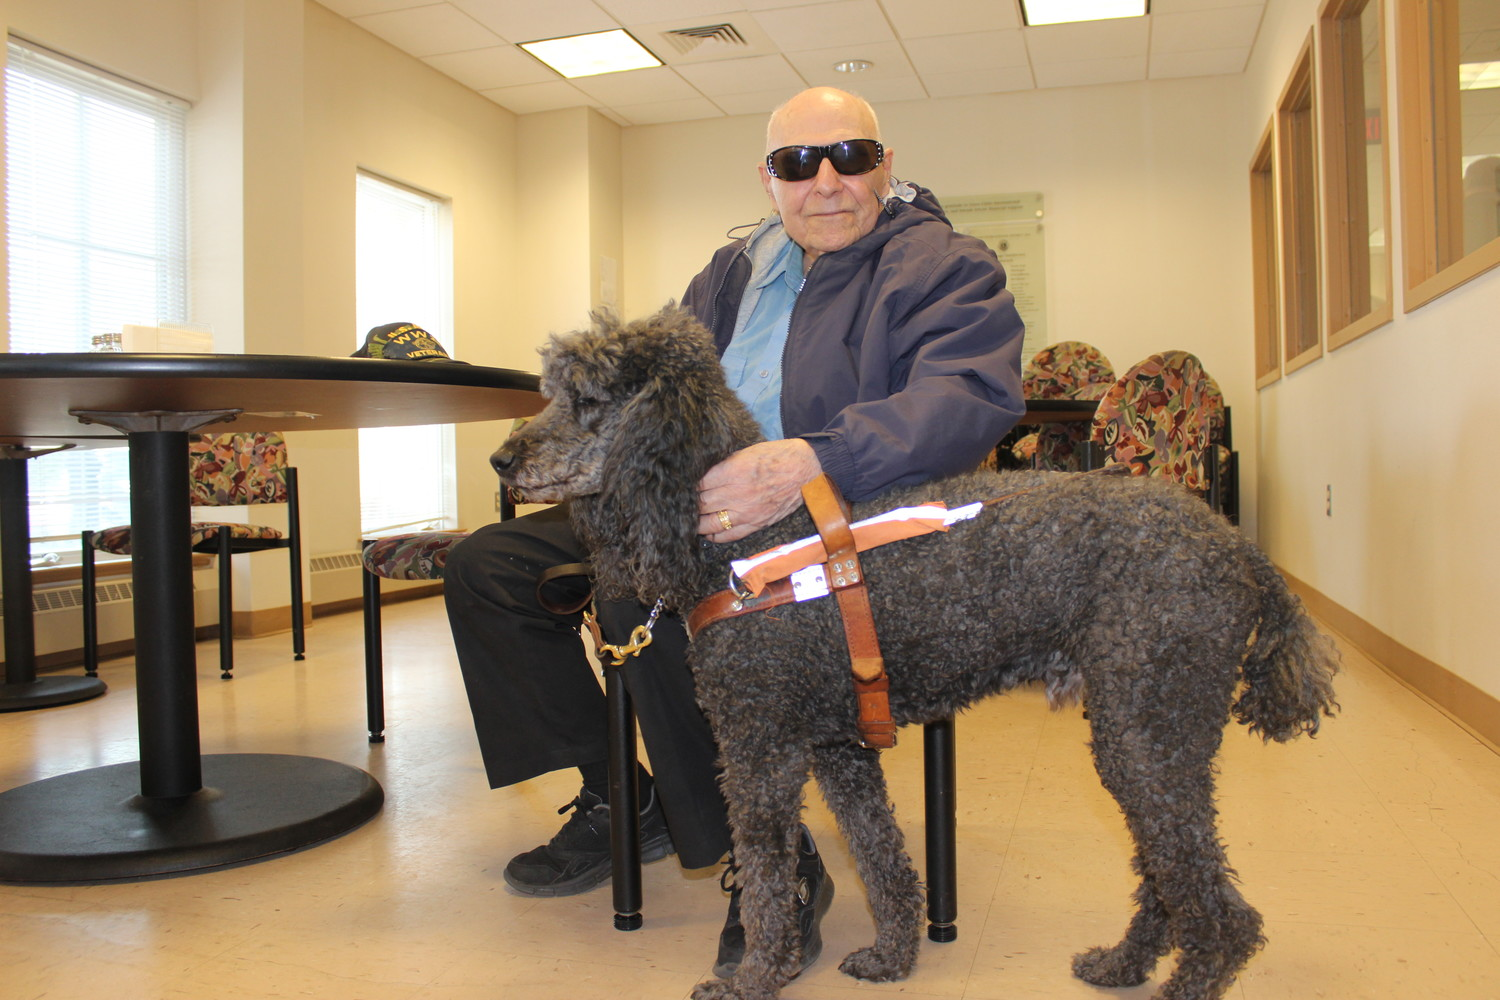 For the past five years, the organization has been one of the beneficiaries of the Chamber's biggest fundraiser of the year, Culinary Delights. Sy Lederman, 90, of Smithtown, spoke to the members of the Chamber to explain how the organization has benefitted him. He is pictured with his poodle Merlot.